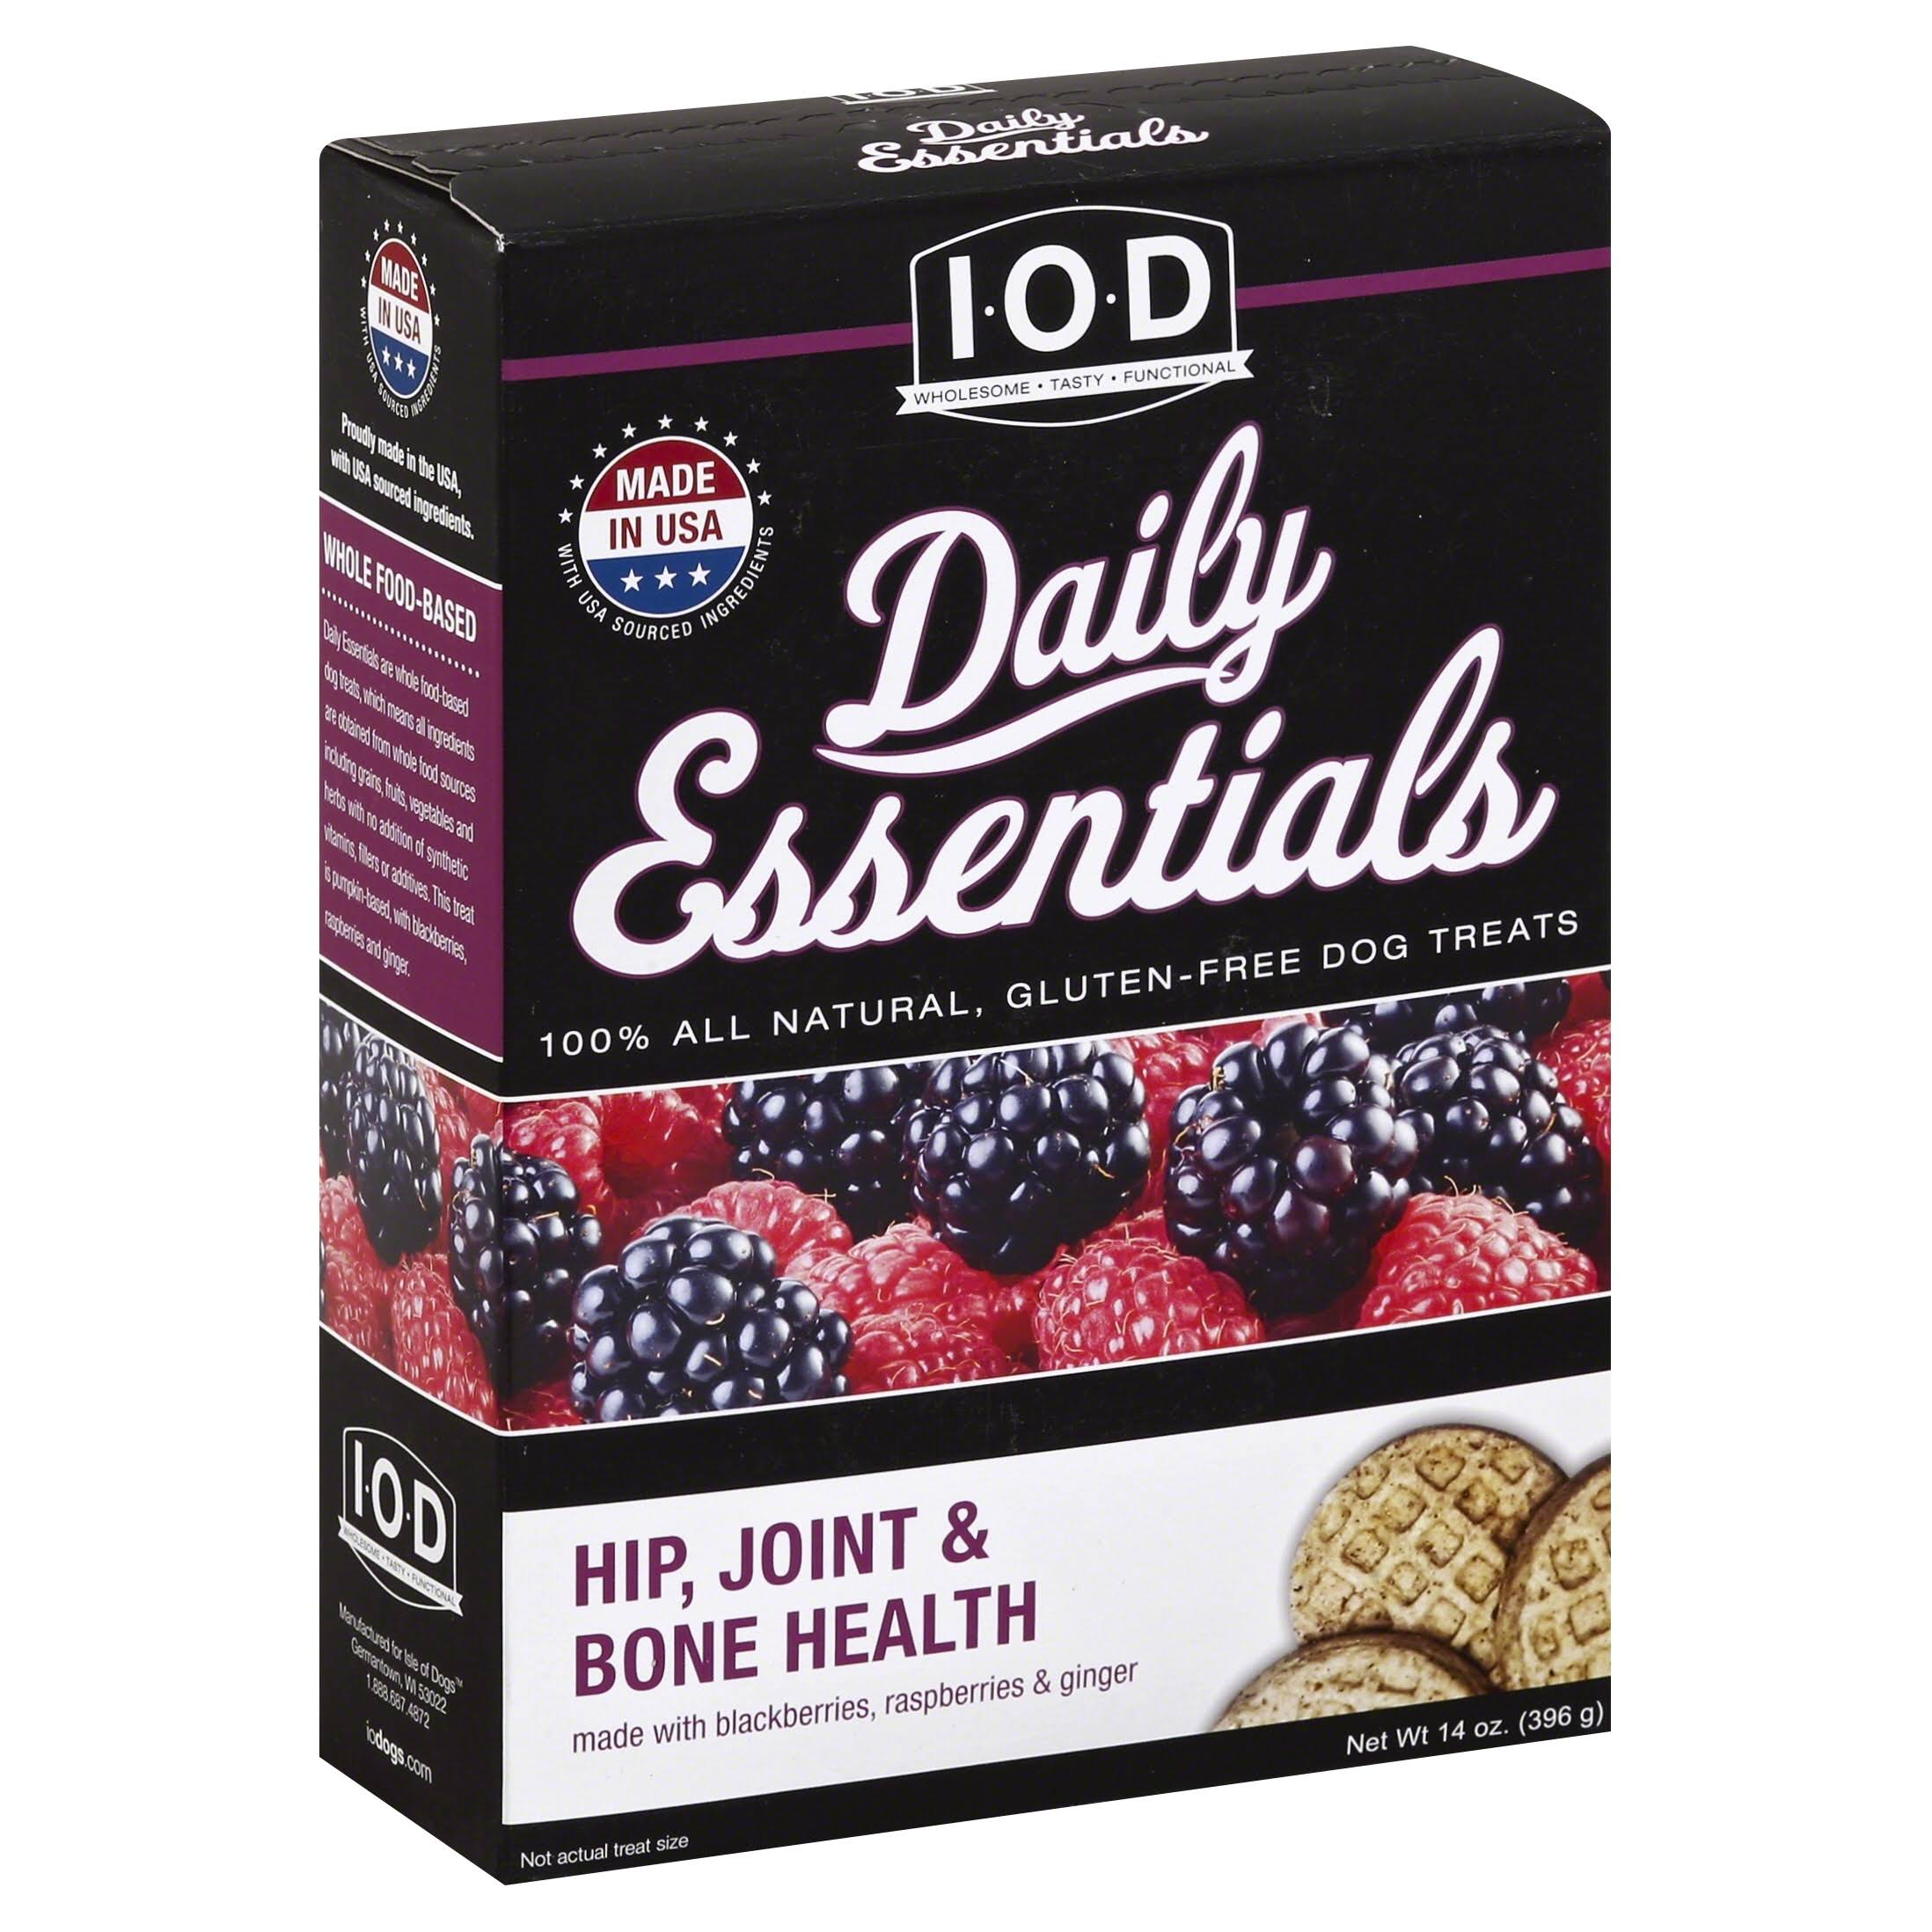 Isle of Dogs Daily Essentials Dog Treats, Hip, Joint & Bone Health - 14 oz